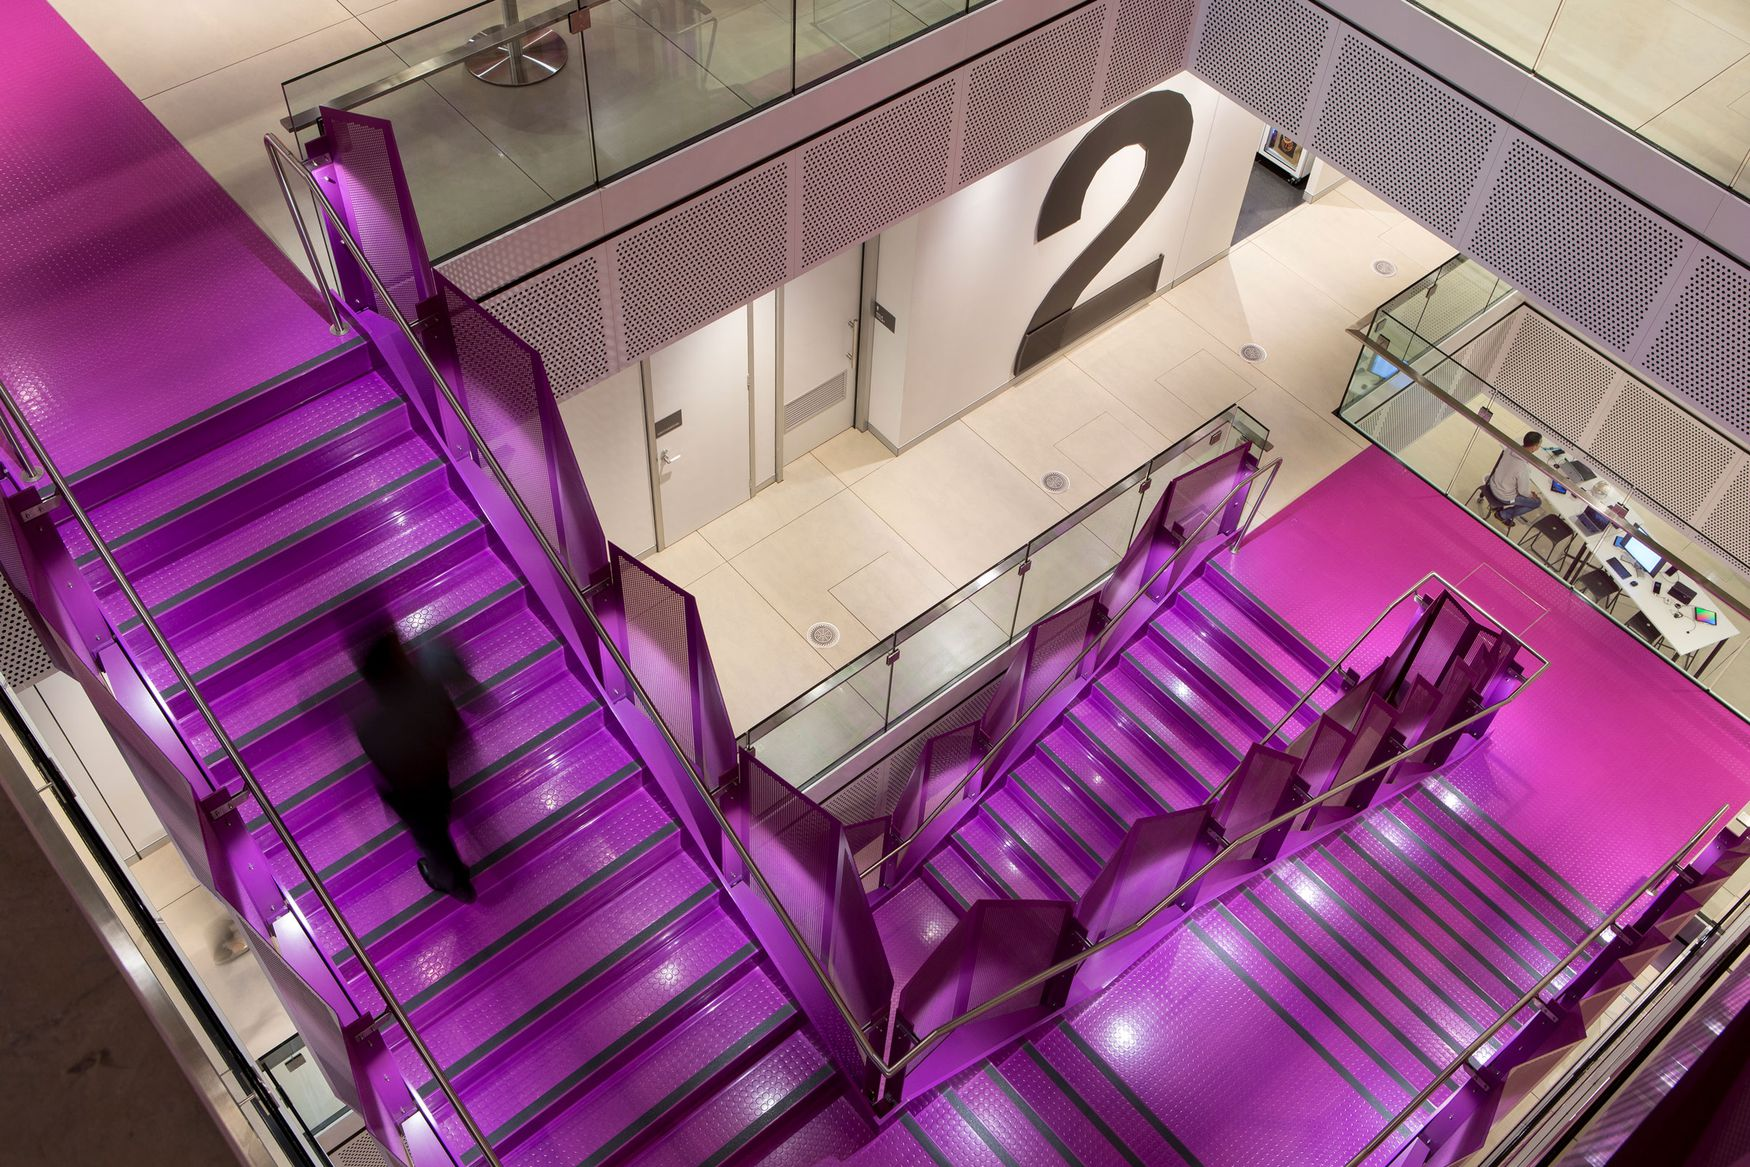 Stairway to Workplace Heaven